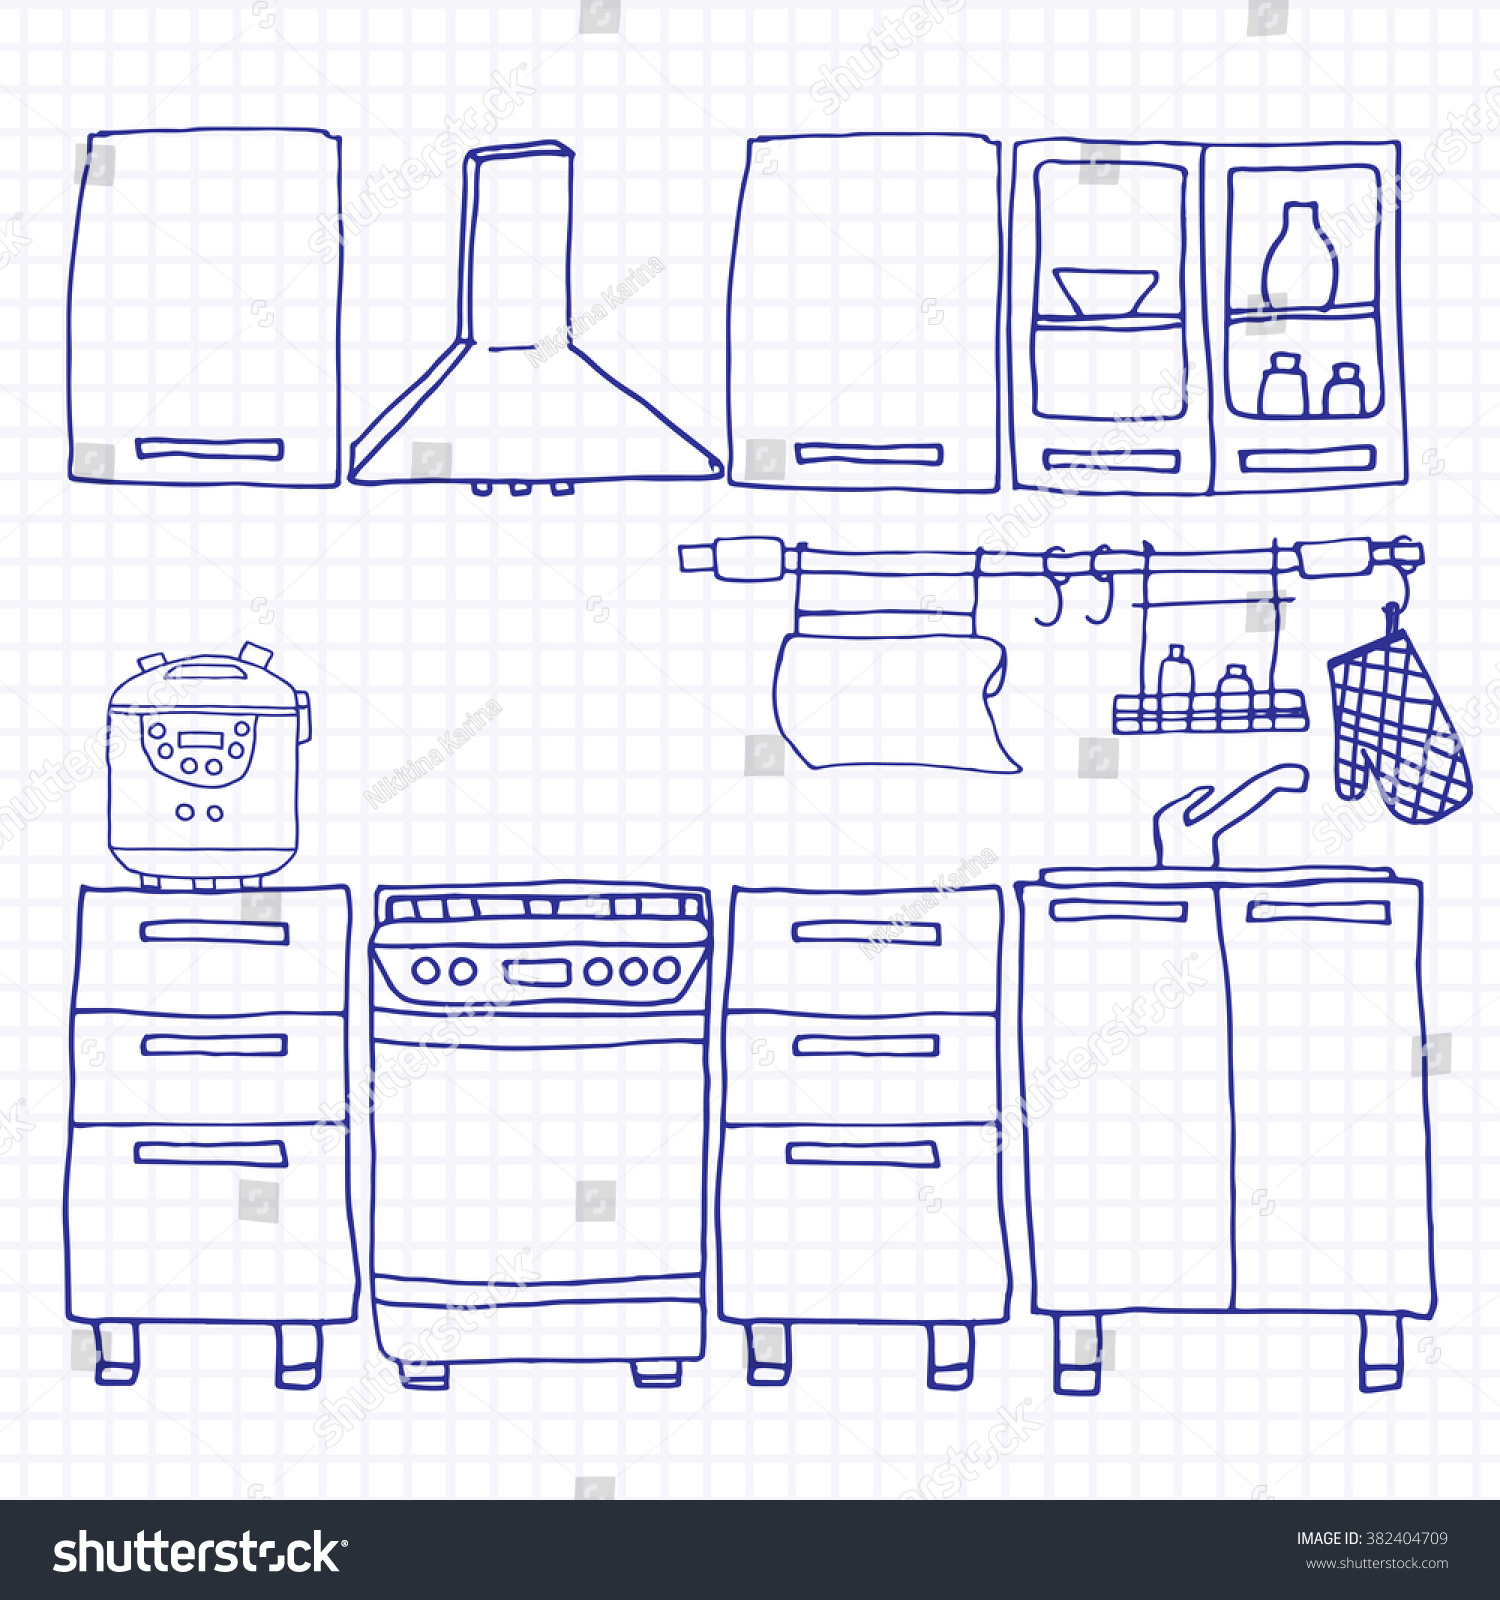 Simple Kitchen Drawing simple kitchen interior hand drawn style stock vector 382404709